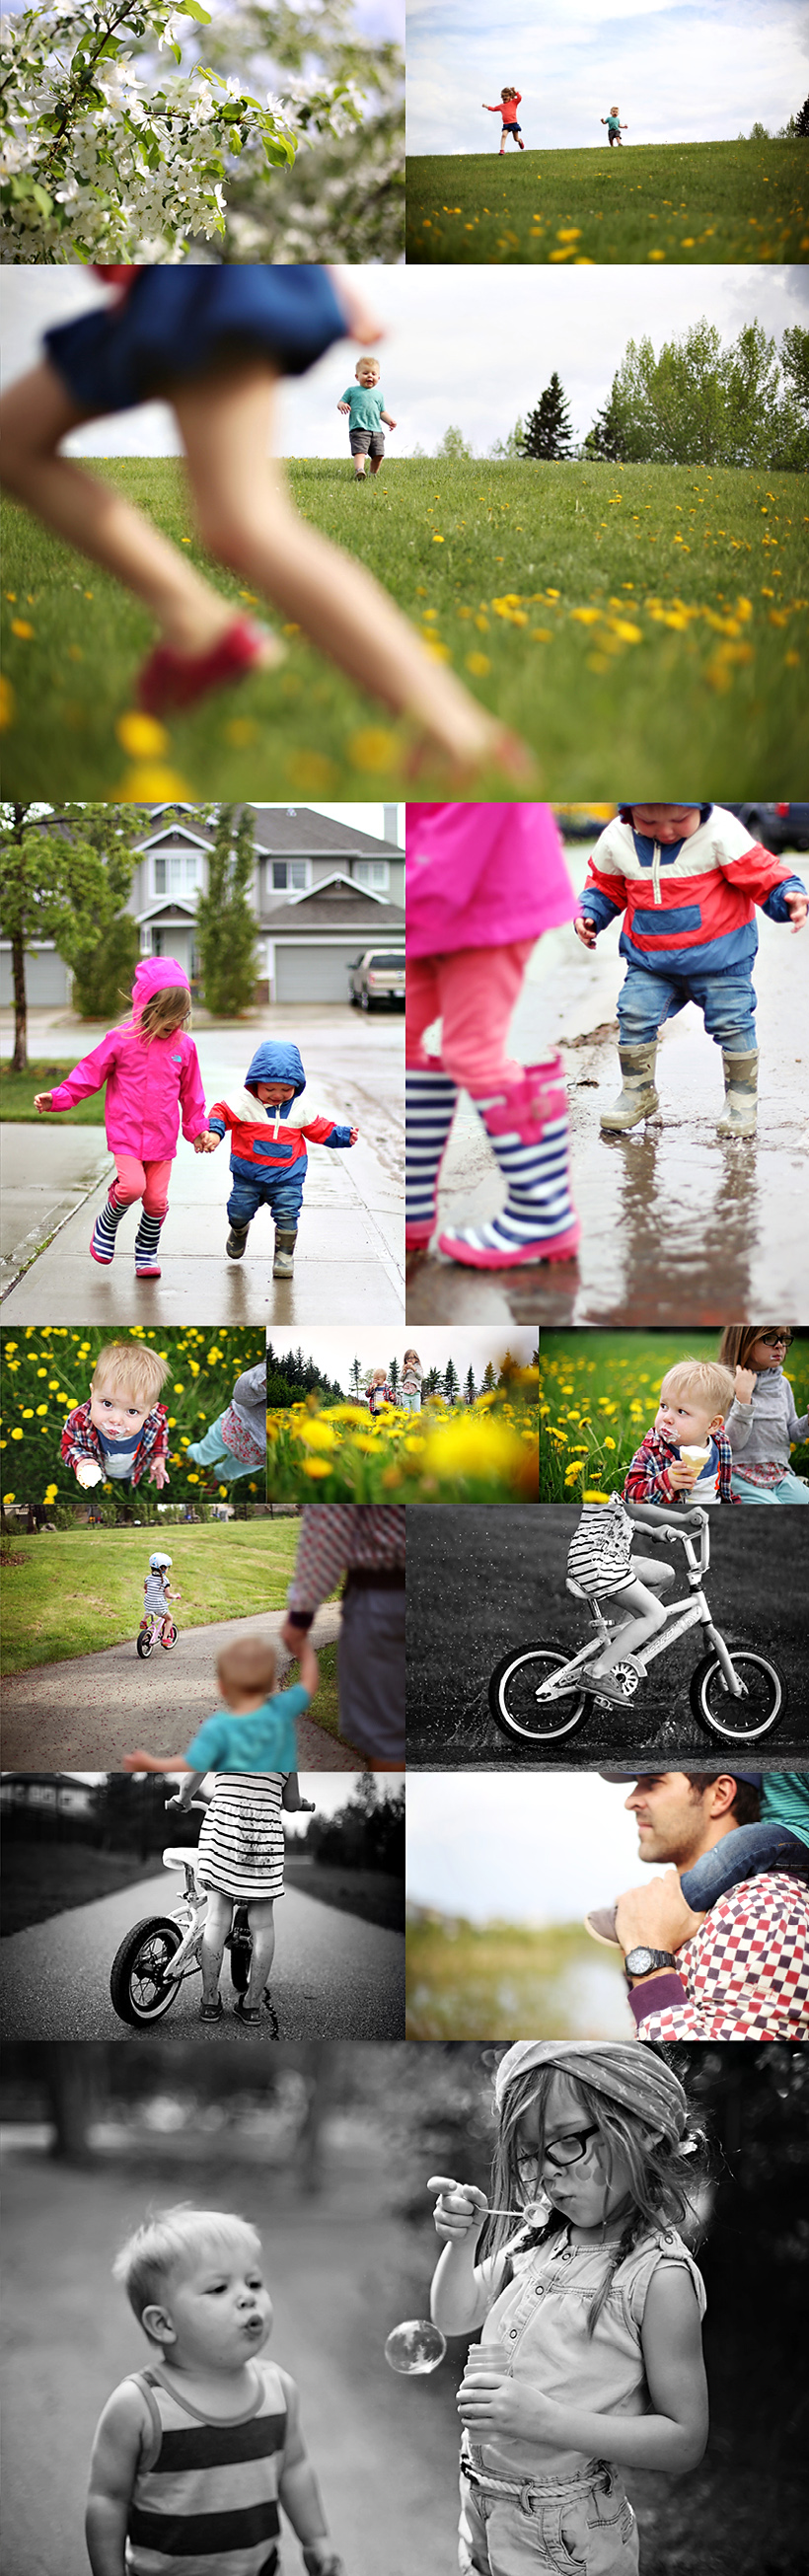 edmonton lifestyle family photographer